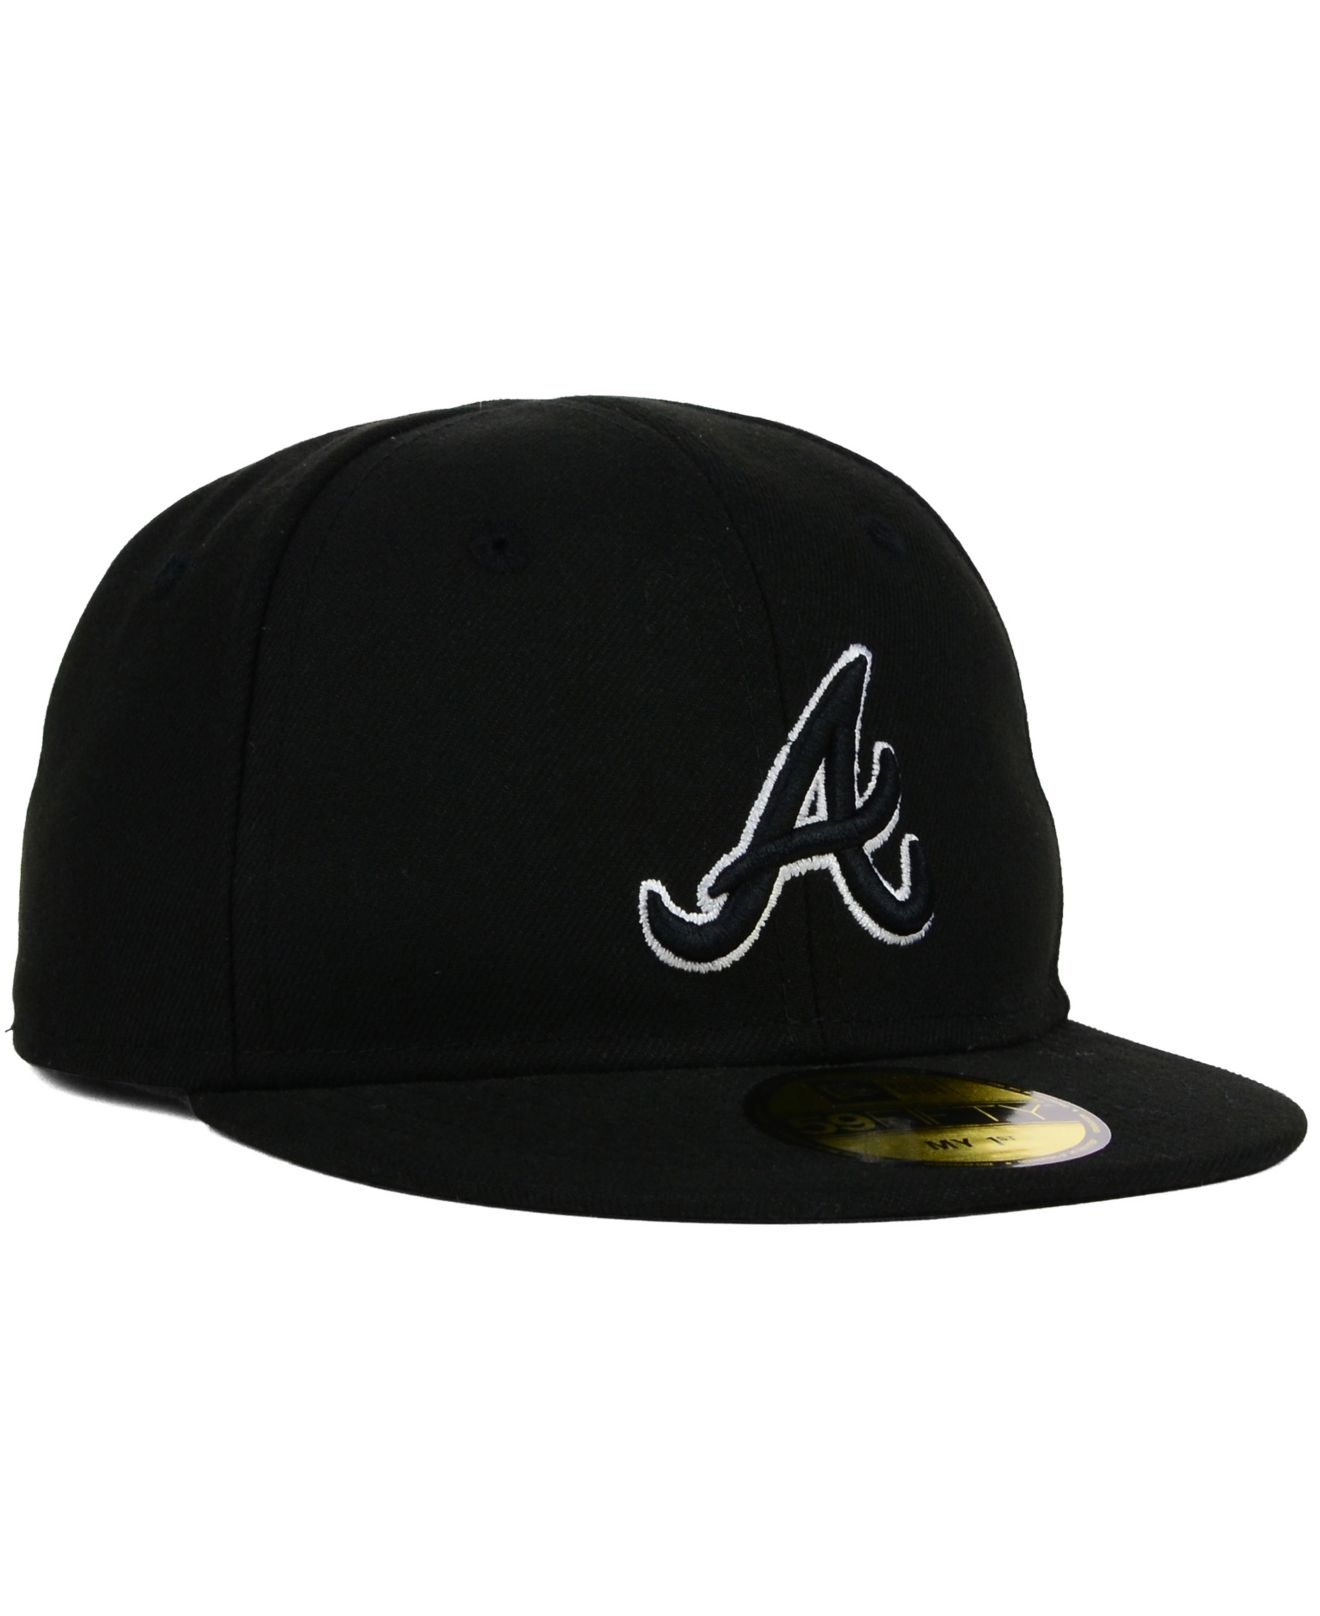 new product 36fbd 77e91 ... new zealand hat lyst ktz kids atlanta braves black and white 59fifty cap  in black 557d5